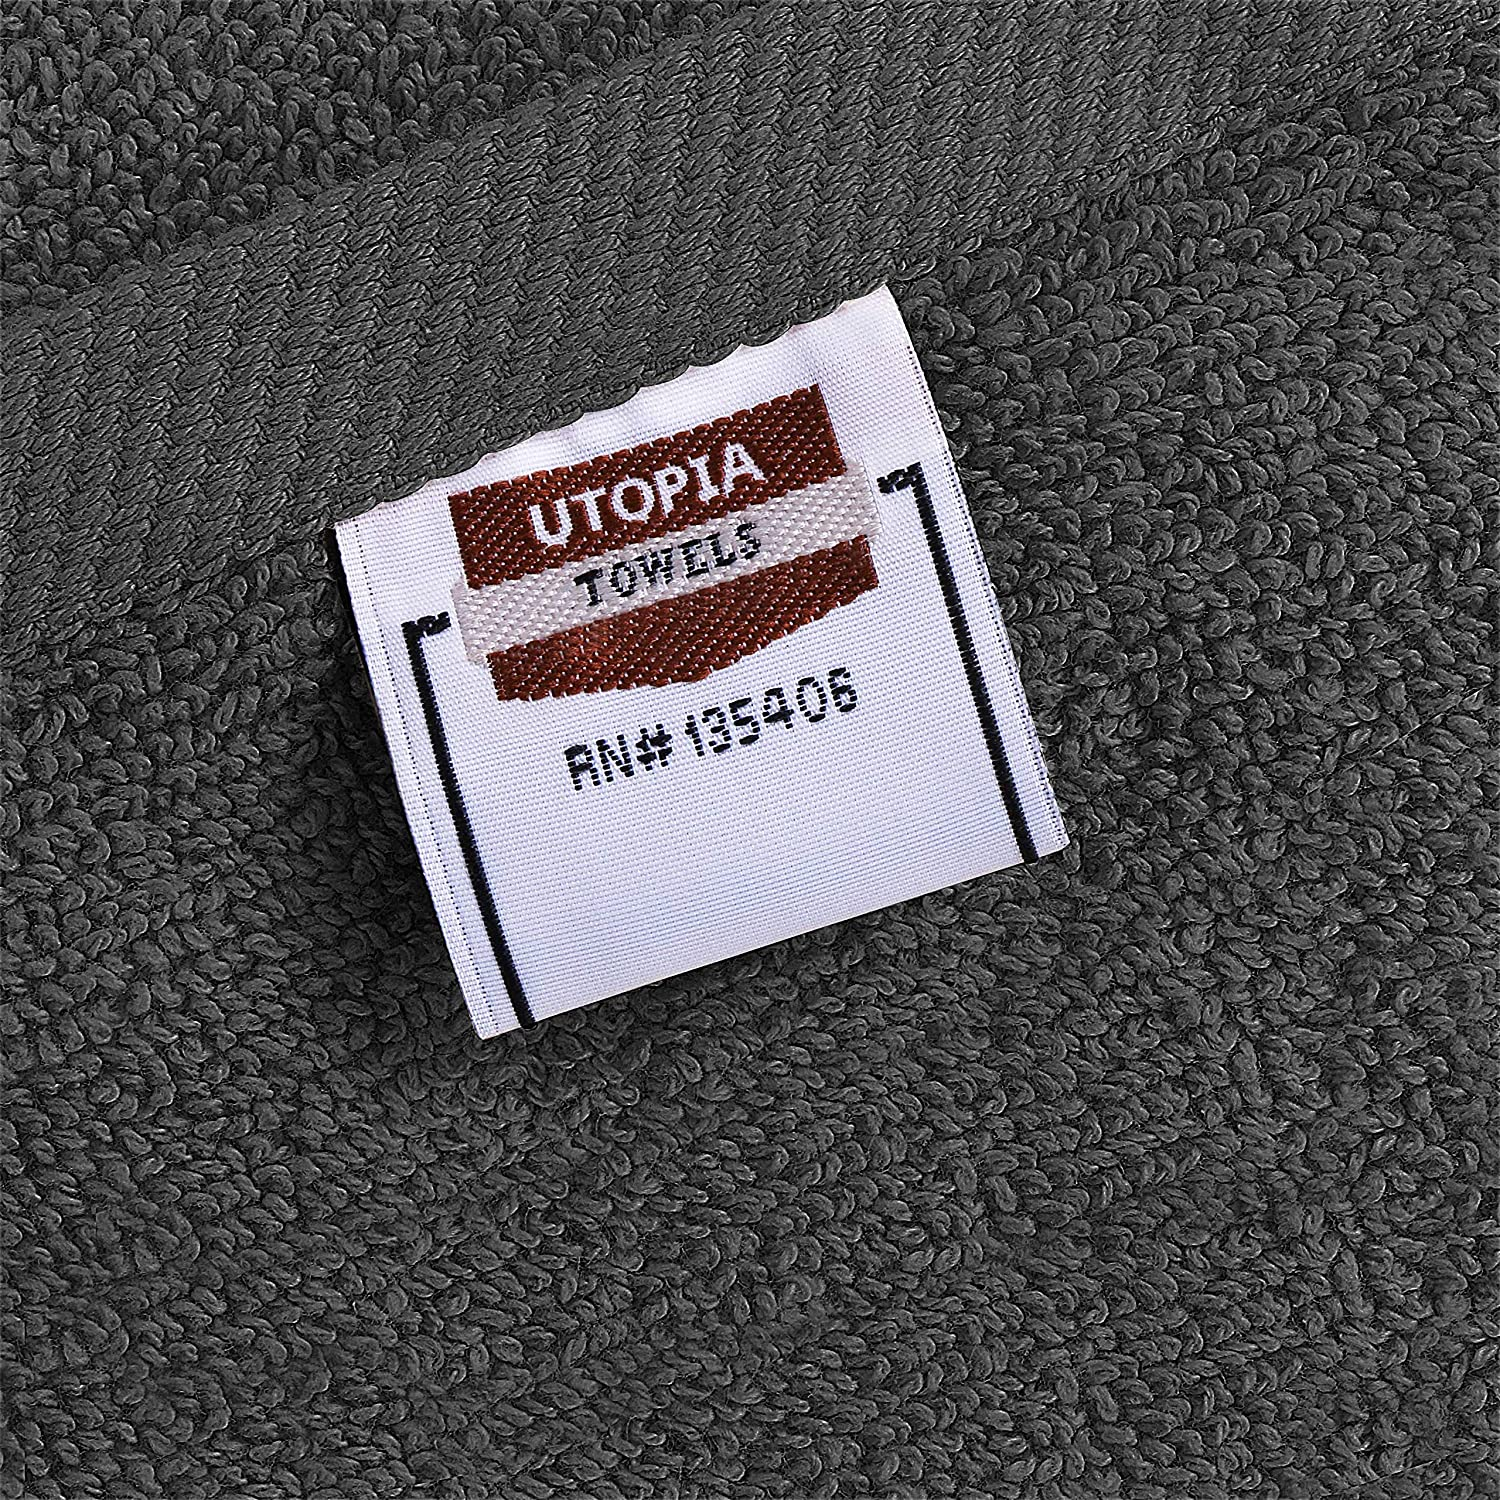 Hotel /& Spa Quality Hand Towels 100/% Combed Ring Spun Cotton Ultra Soft and Highly Absorbent 6-Pack Utopia Towels Premium Beige Hand Towels 600 GSM Exrta Large Hand Towels 16 x 28 inches